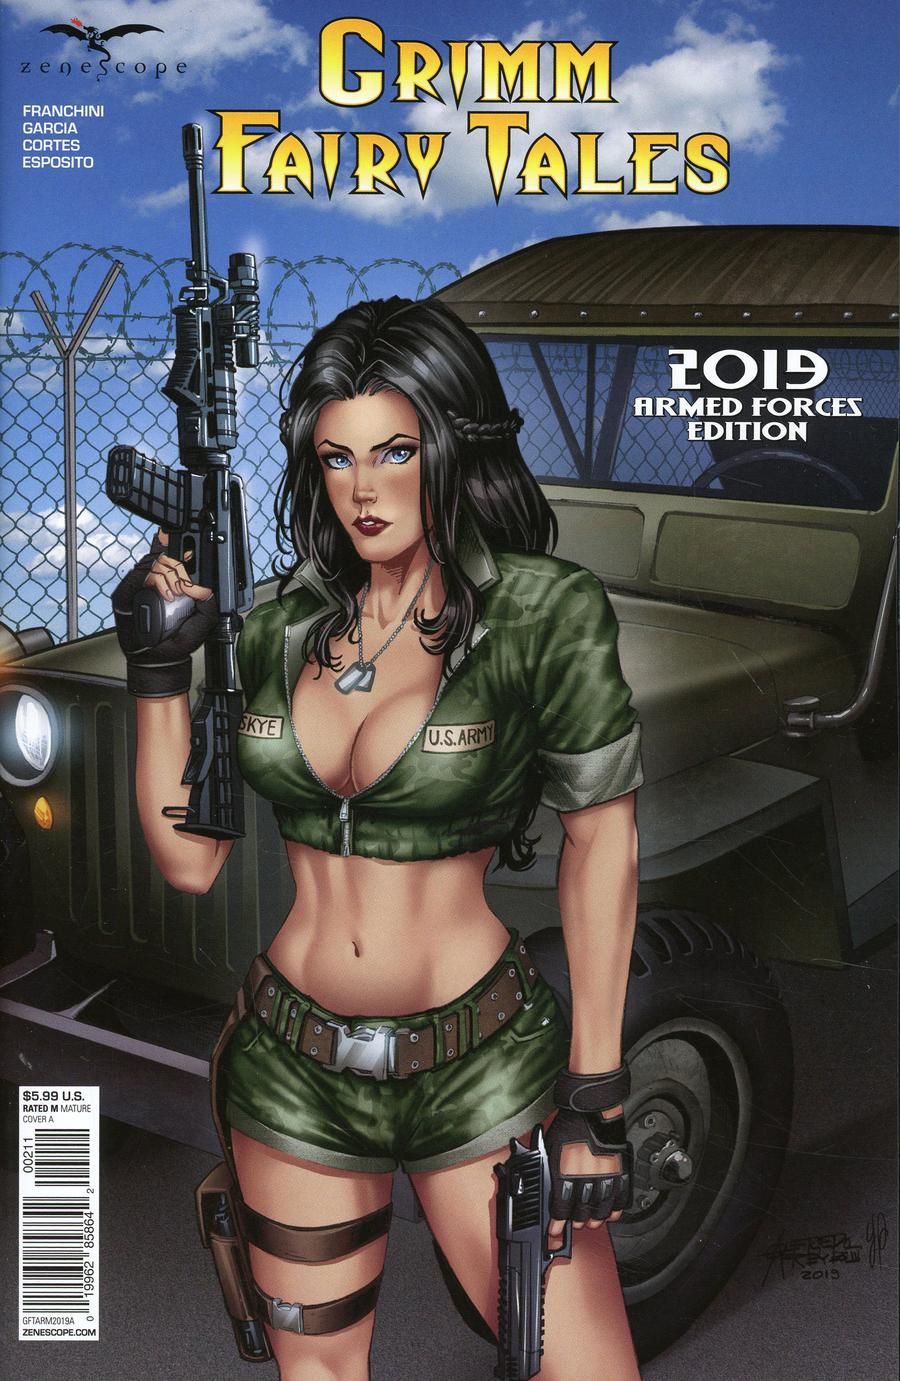 Grimm Fairy Tales 2019 Armed Forces Appreciation Cover A Alfredo Reyes